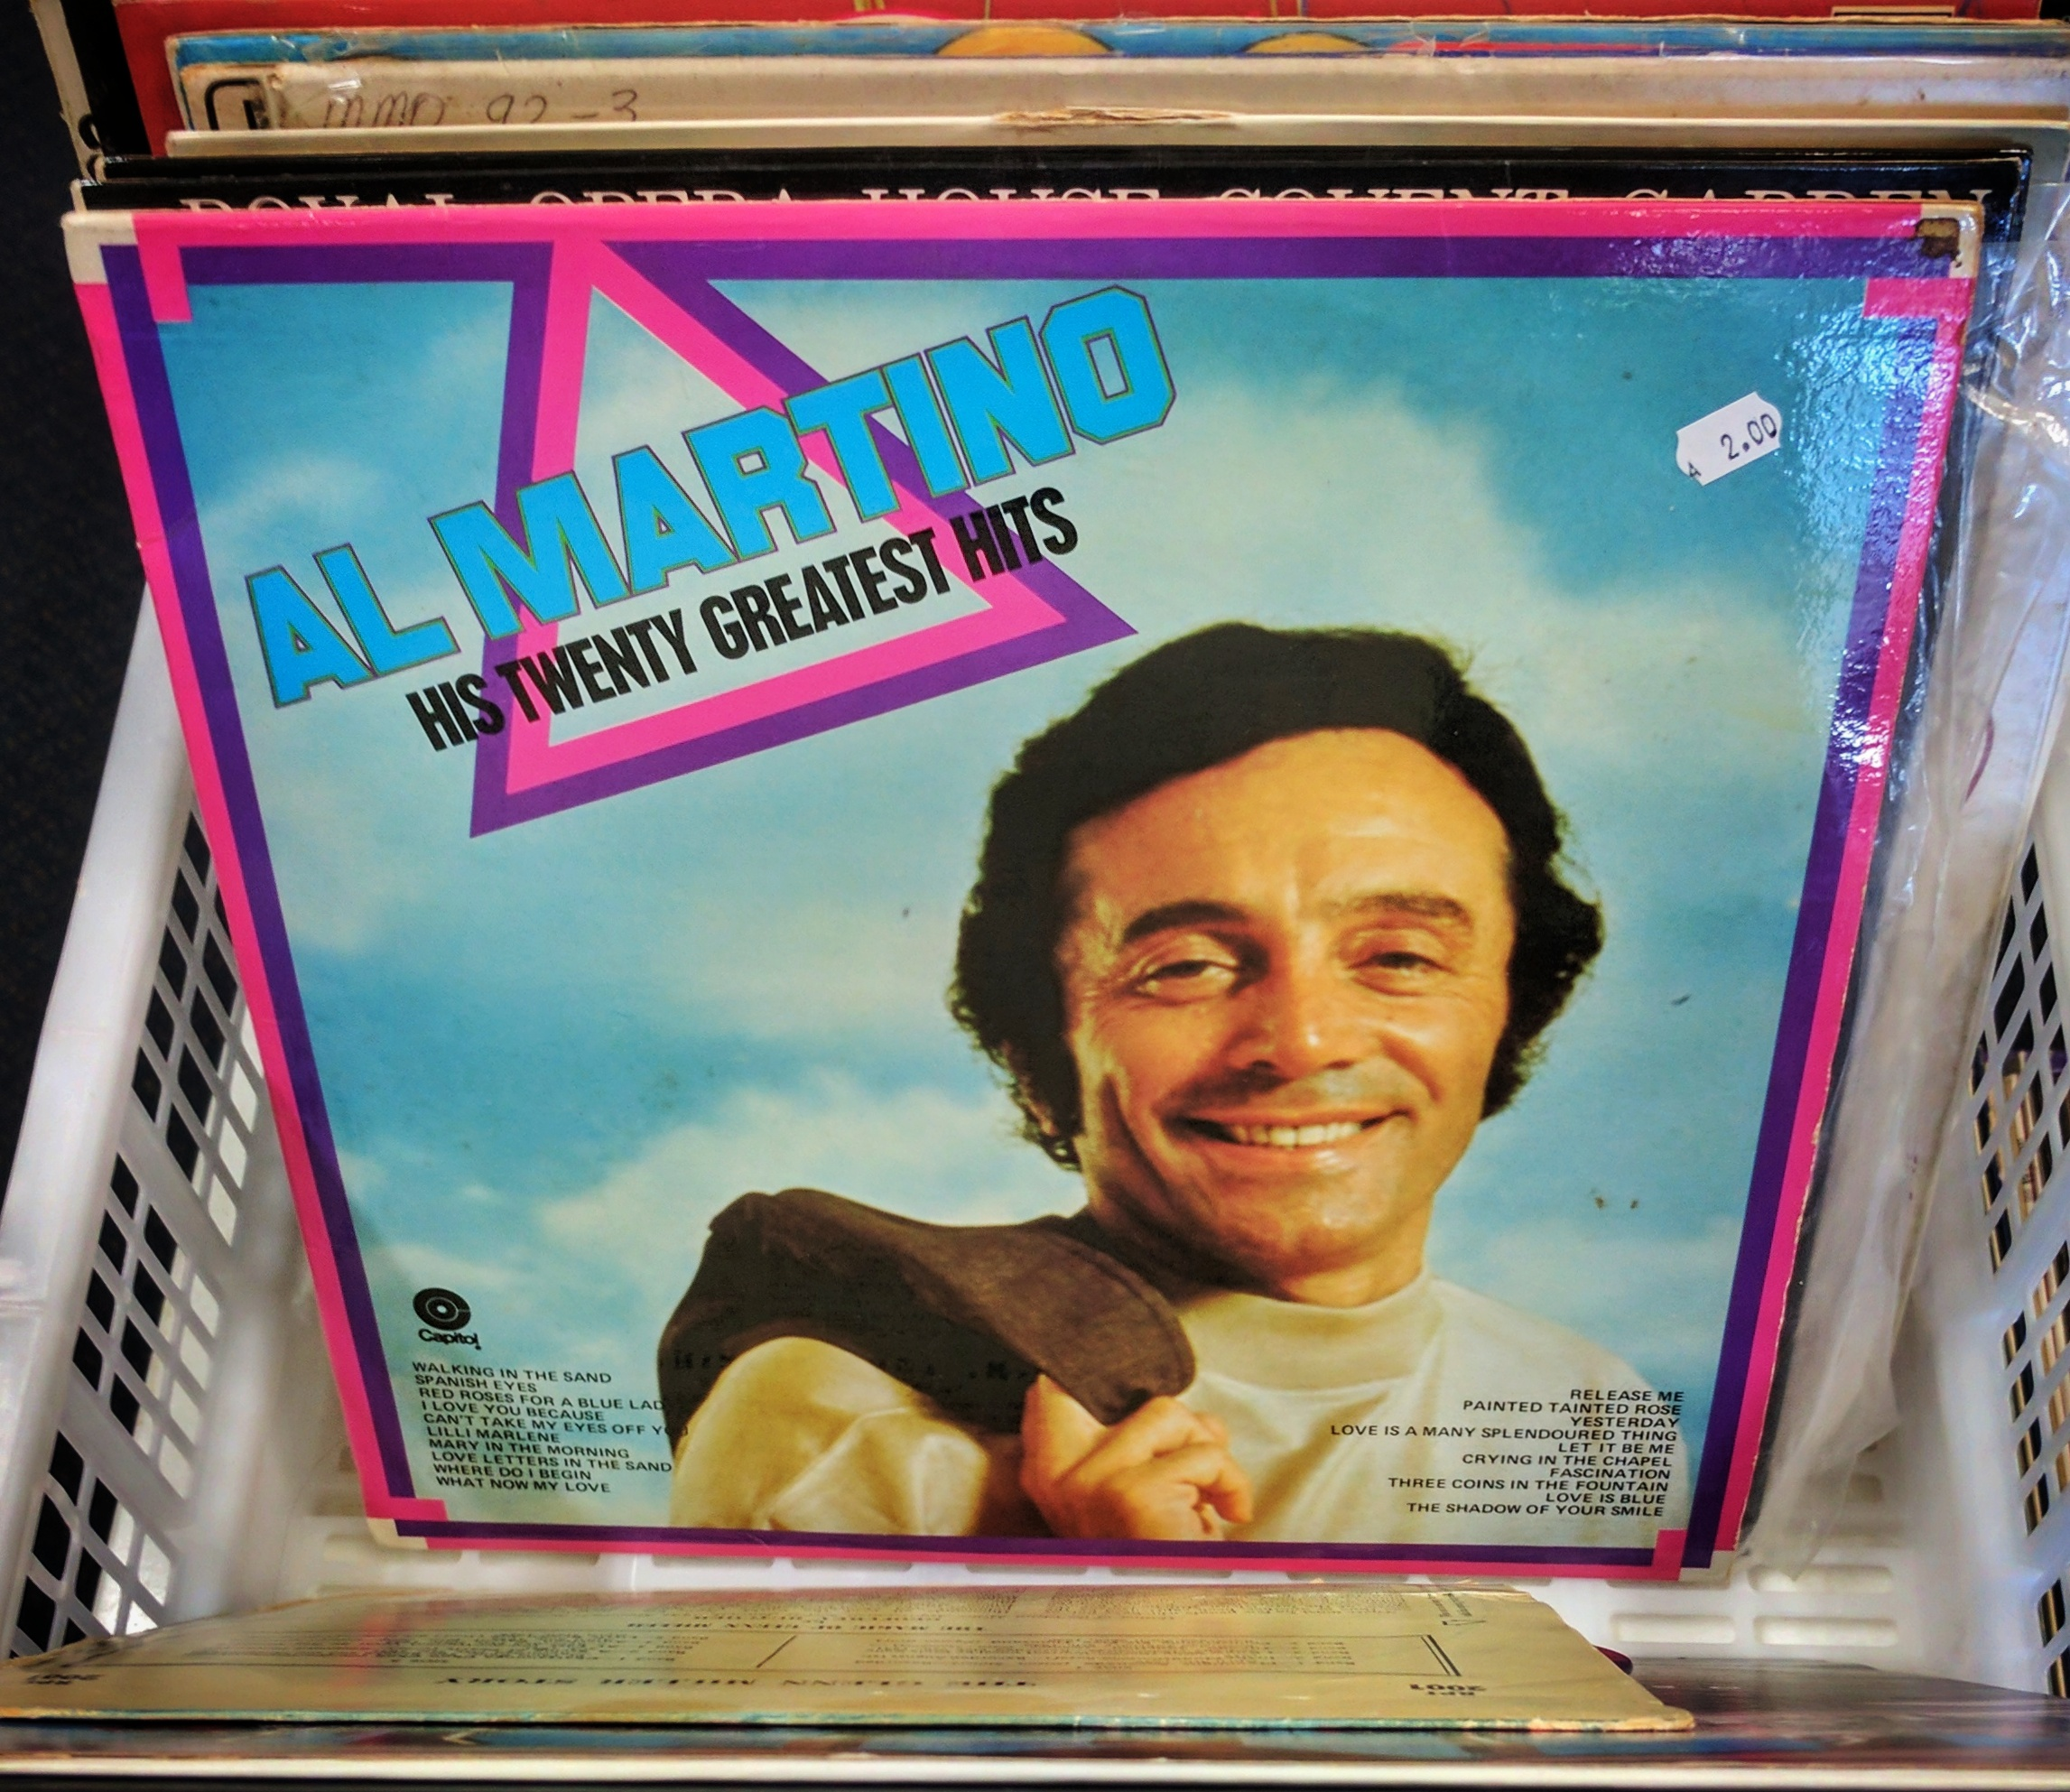 Al Martino, 'His Twenty Greatest Hits' vinyl album